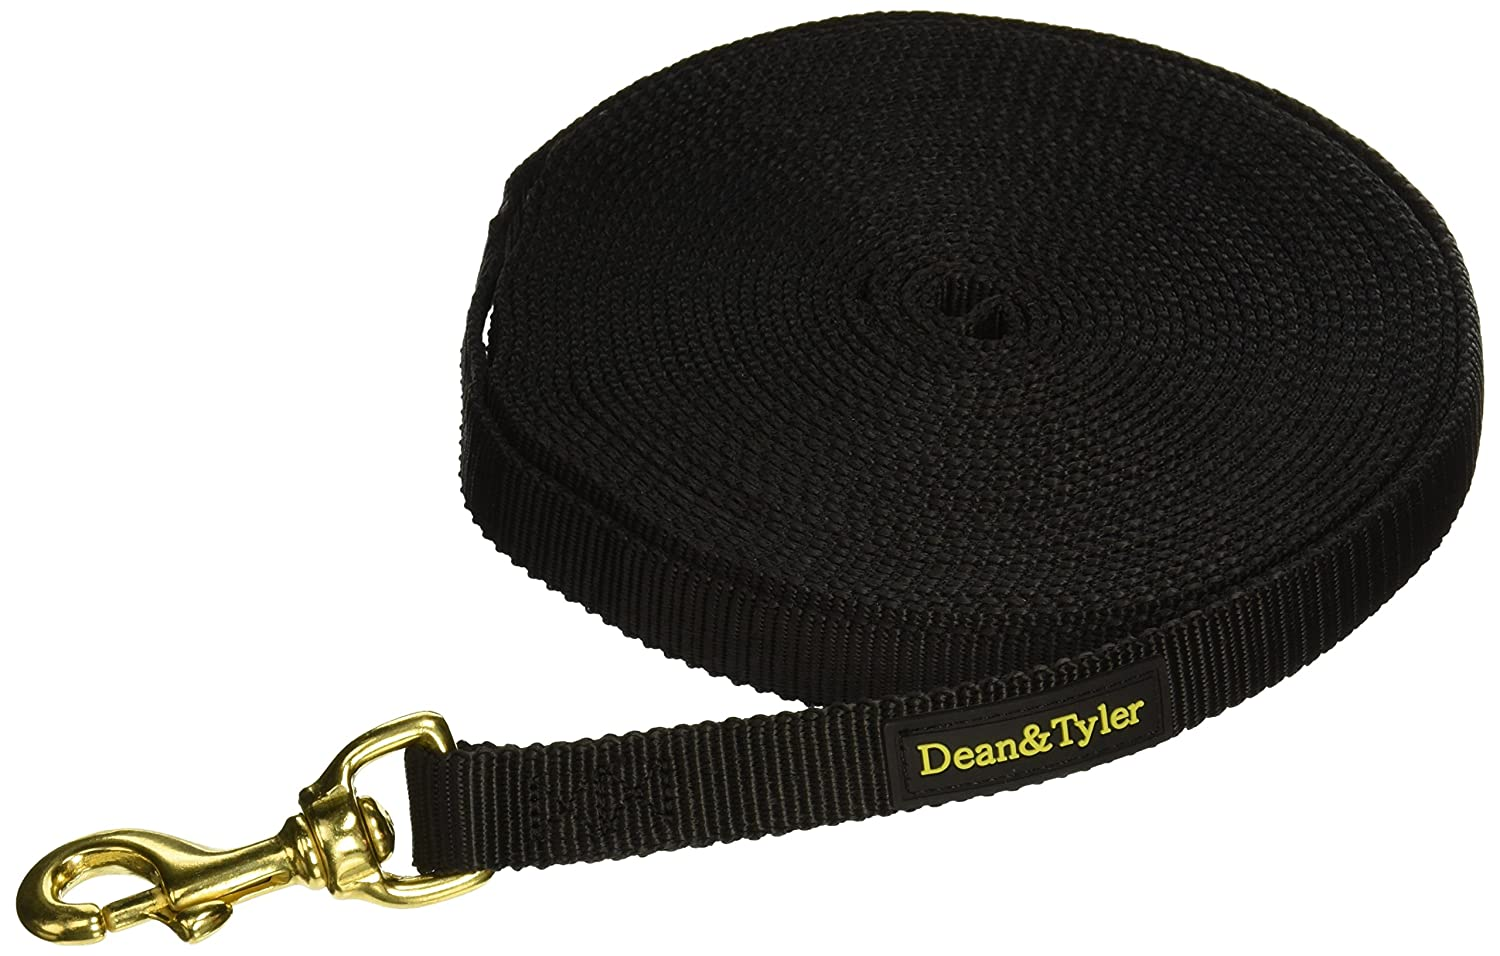 30-Feet by 3 4-Inch Dean and Tyler Nylon Track Leash, Black 30-Feet by 3 4-Inch With Solid Brass Hardware